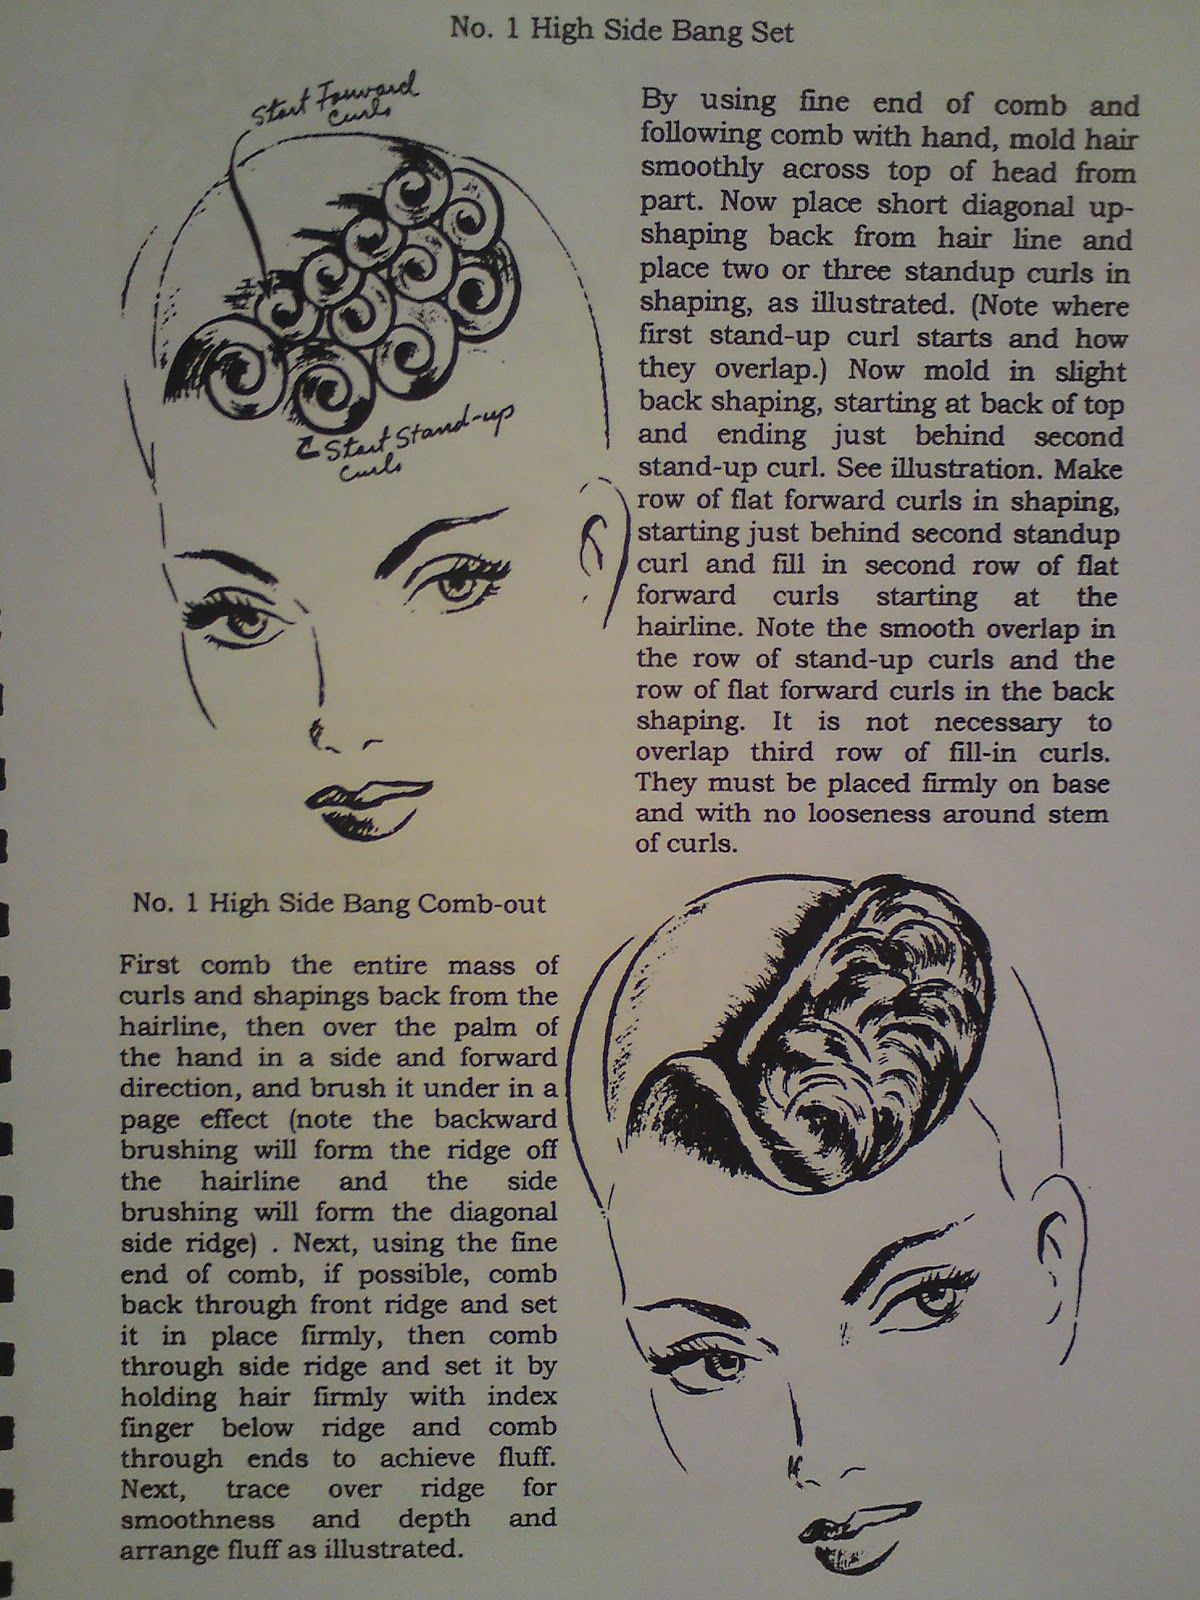 pin curl diagram to work on that front wave finger and marcell rh pinterest com pin curl set diagram marilyn monroe pin curl diagram